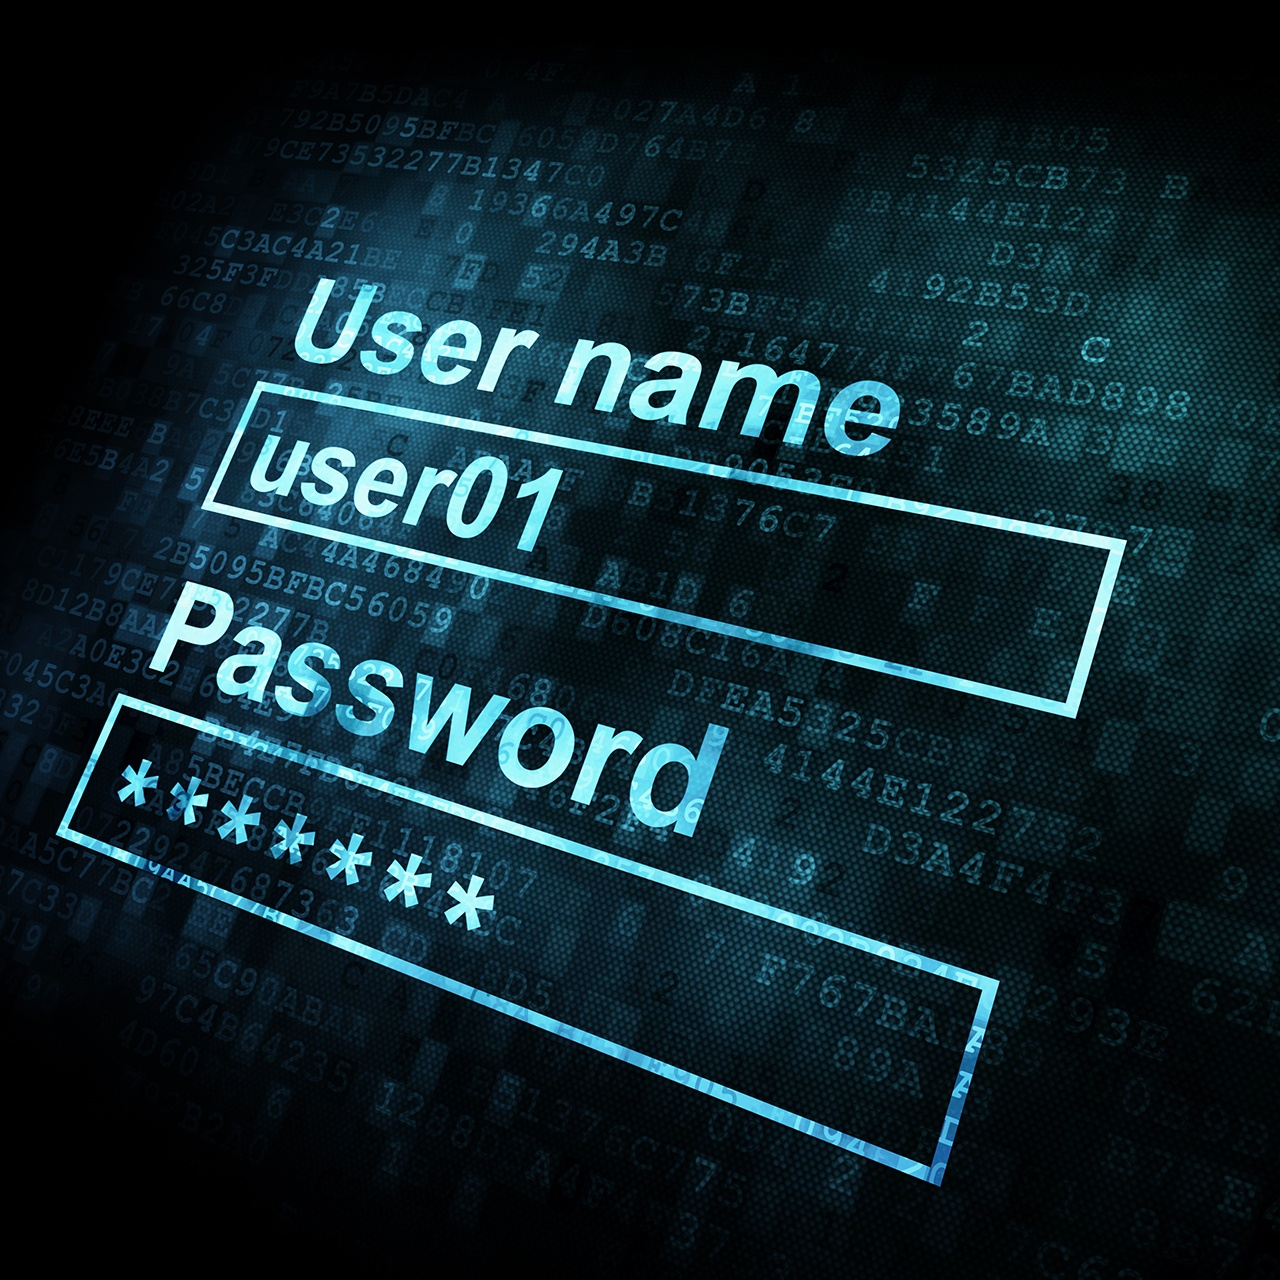 Password Breaches Fueling Booming Credential Stuffing Business